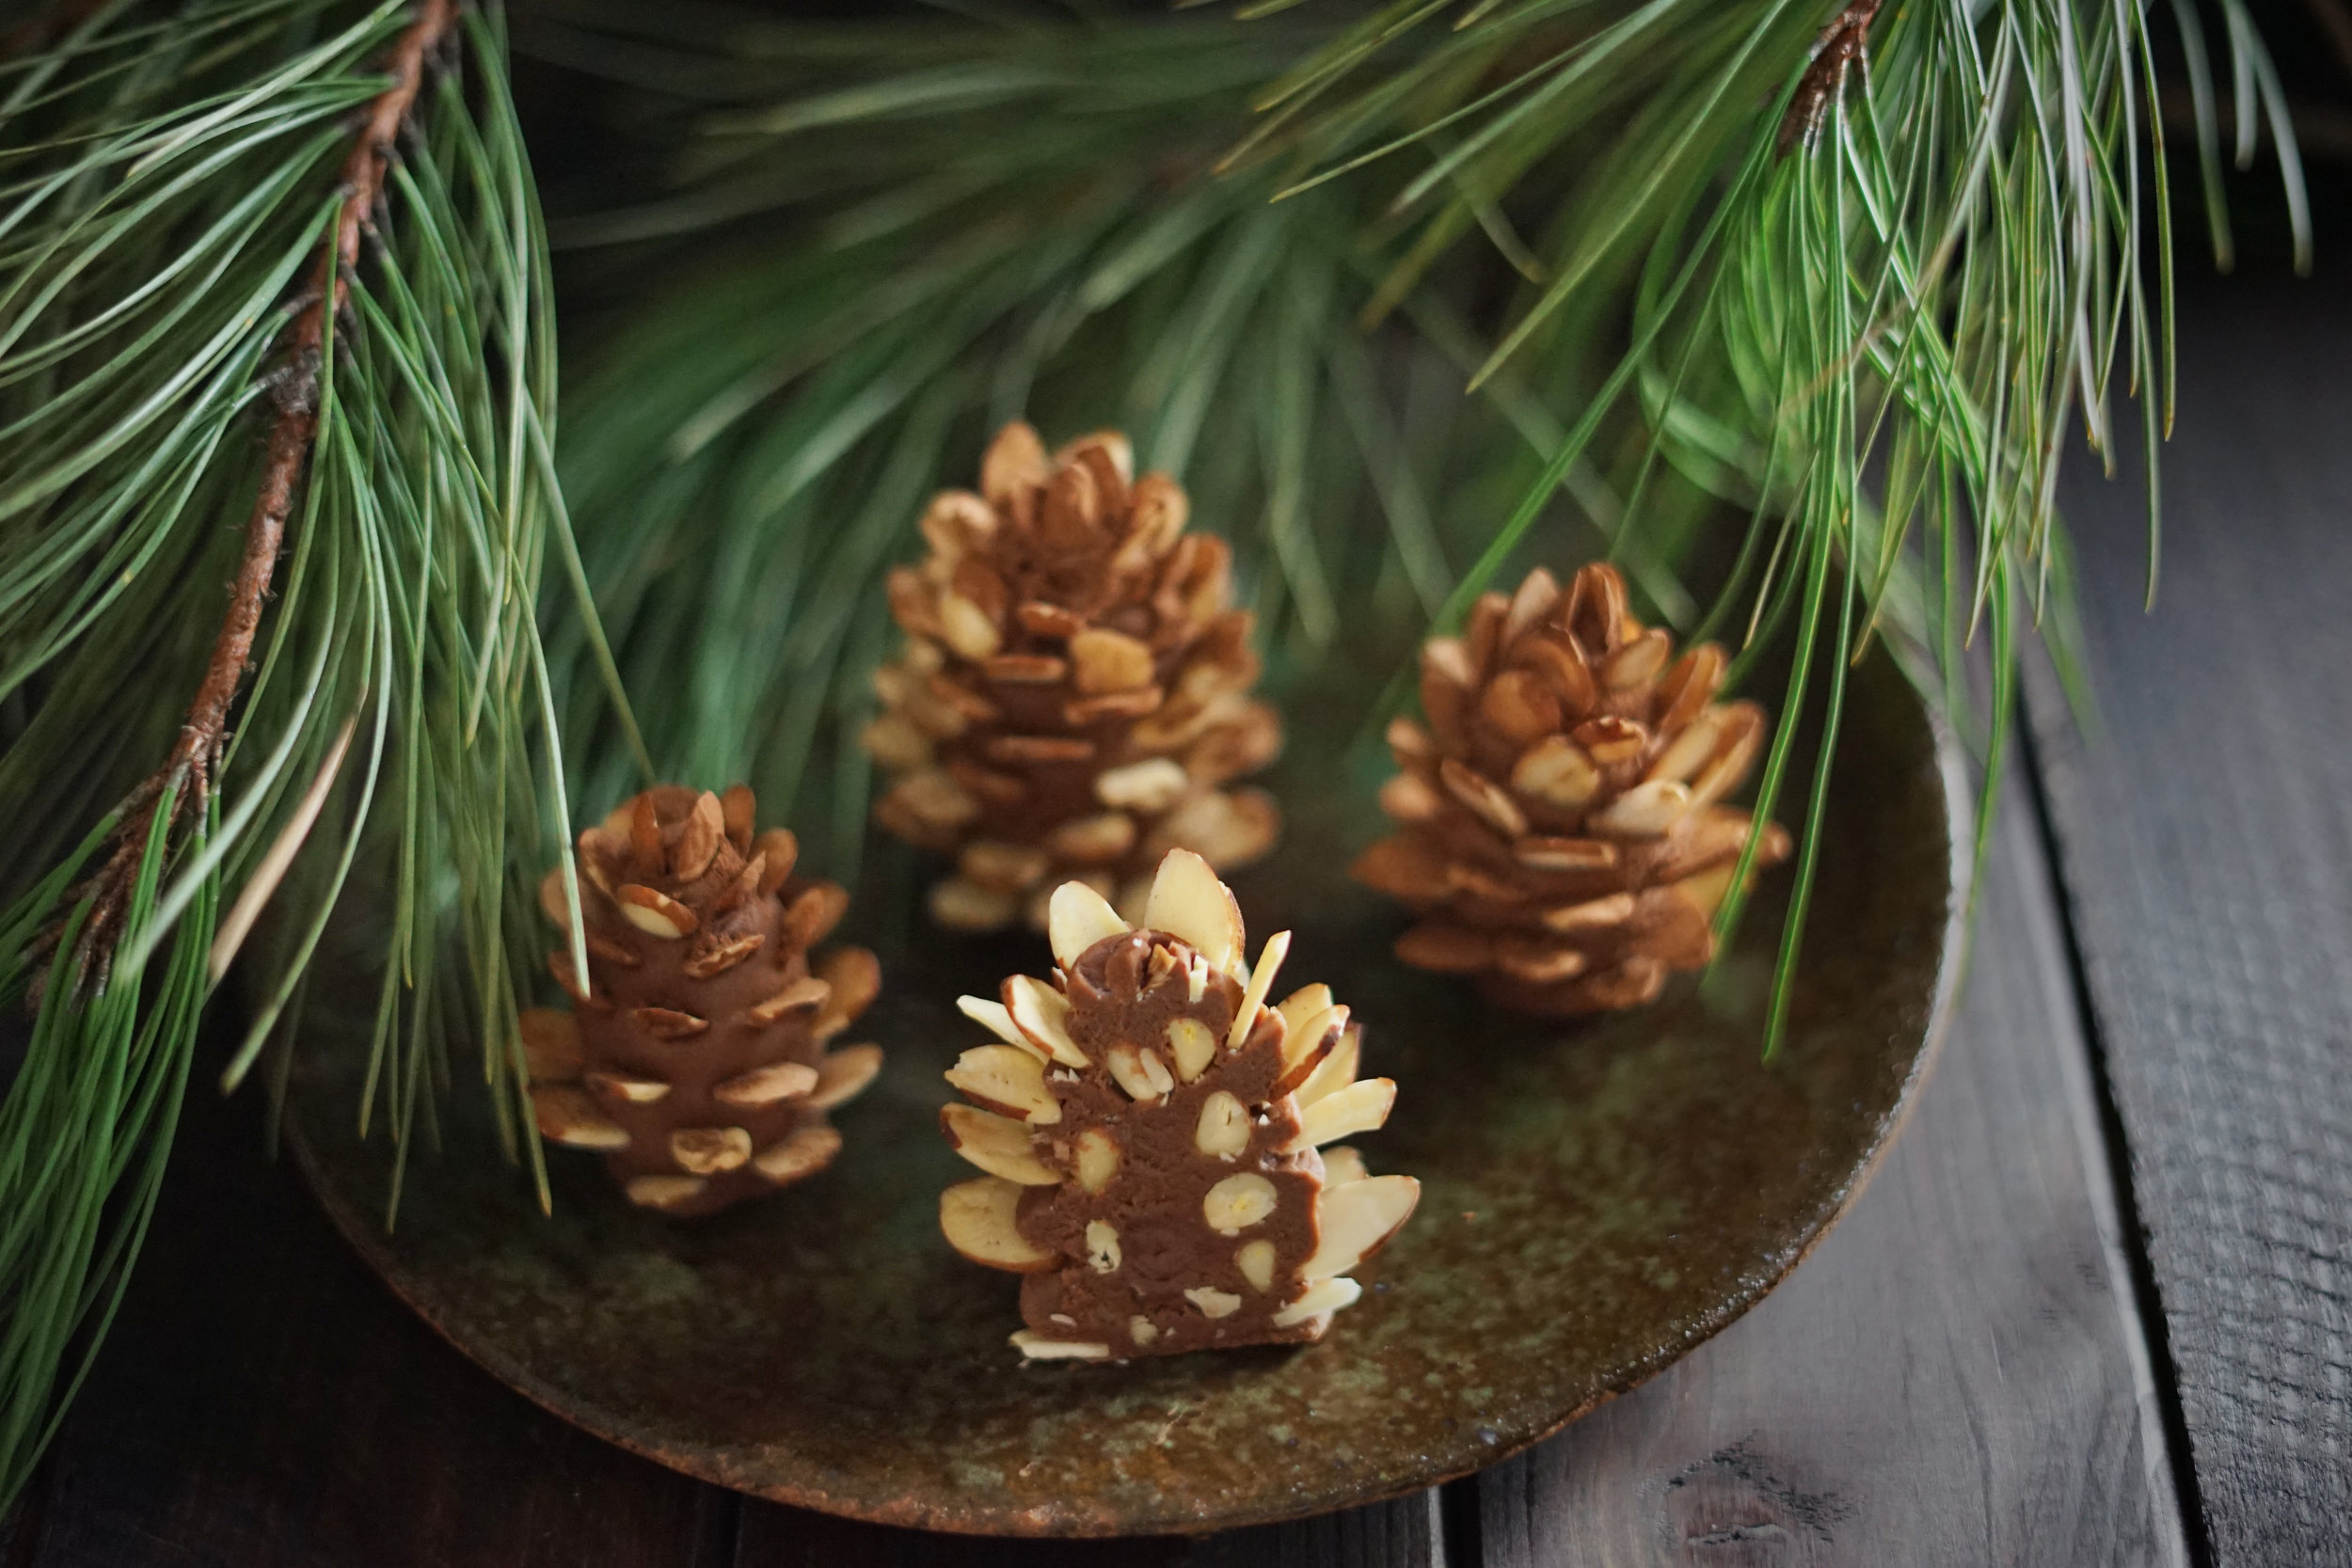 PINE CONE CONFECTIONS AND HIDDEN WONDERS